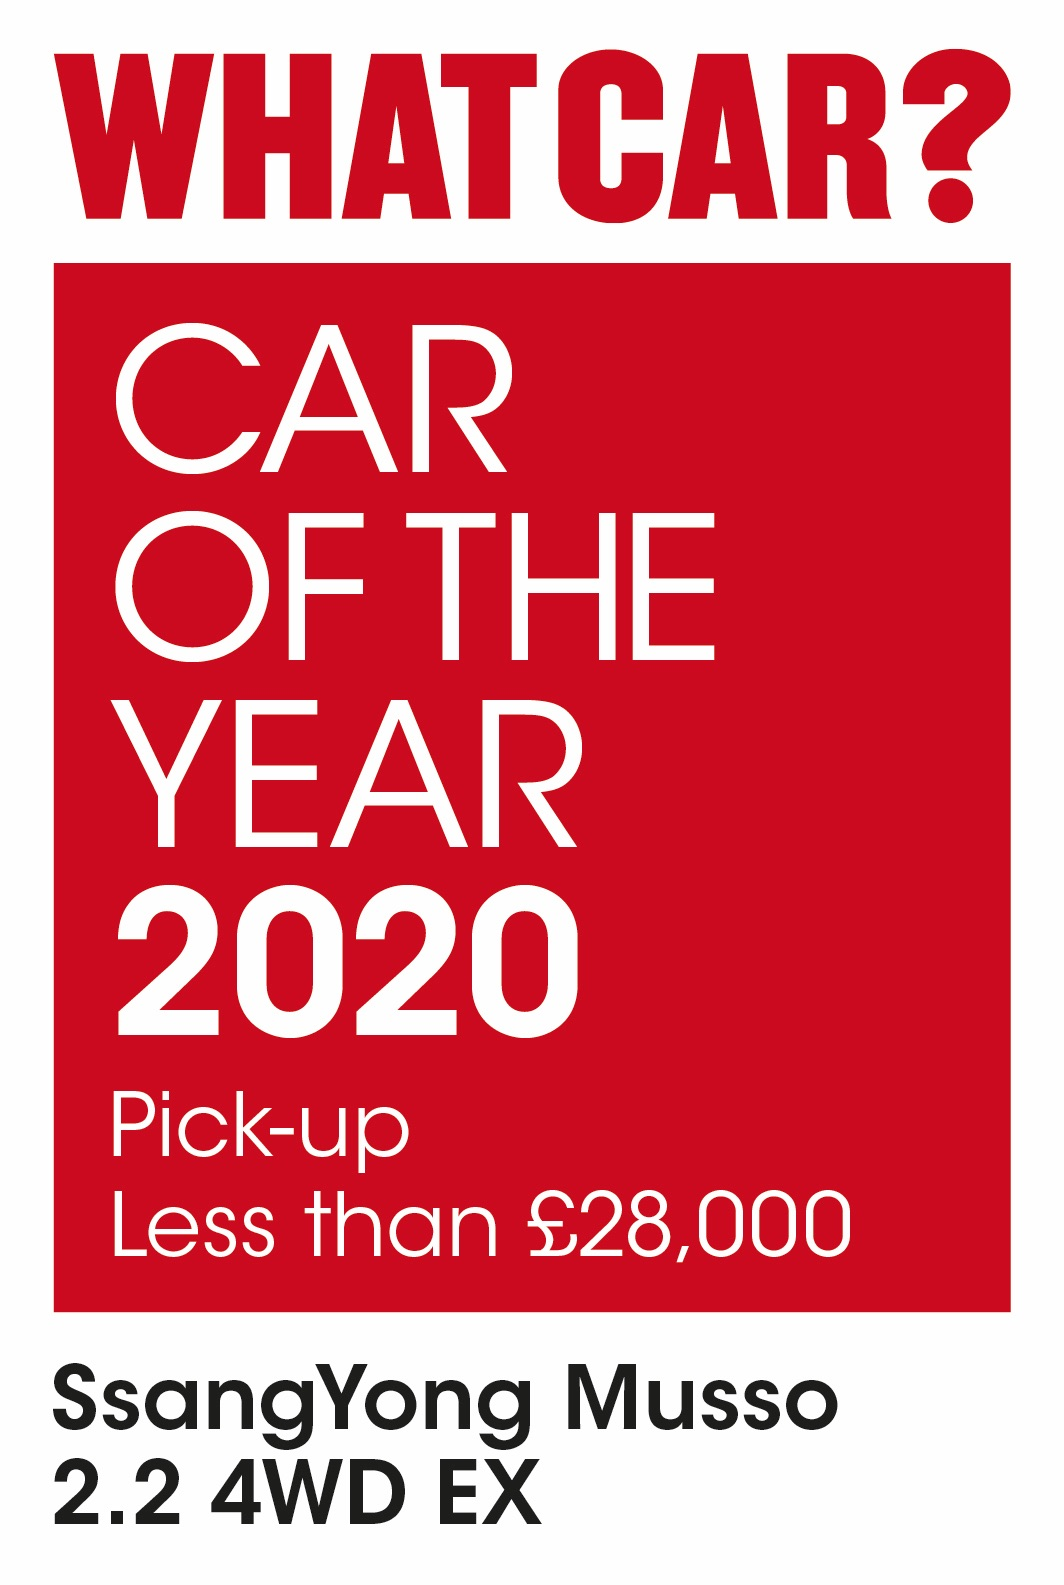 What Car?  SsangYong Musso - WINS Car of the Year 2020 AWARD for Pick-up Less than £28,000